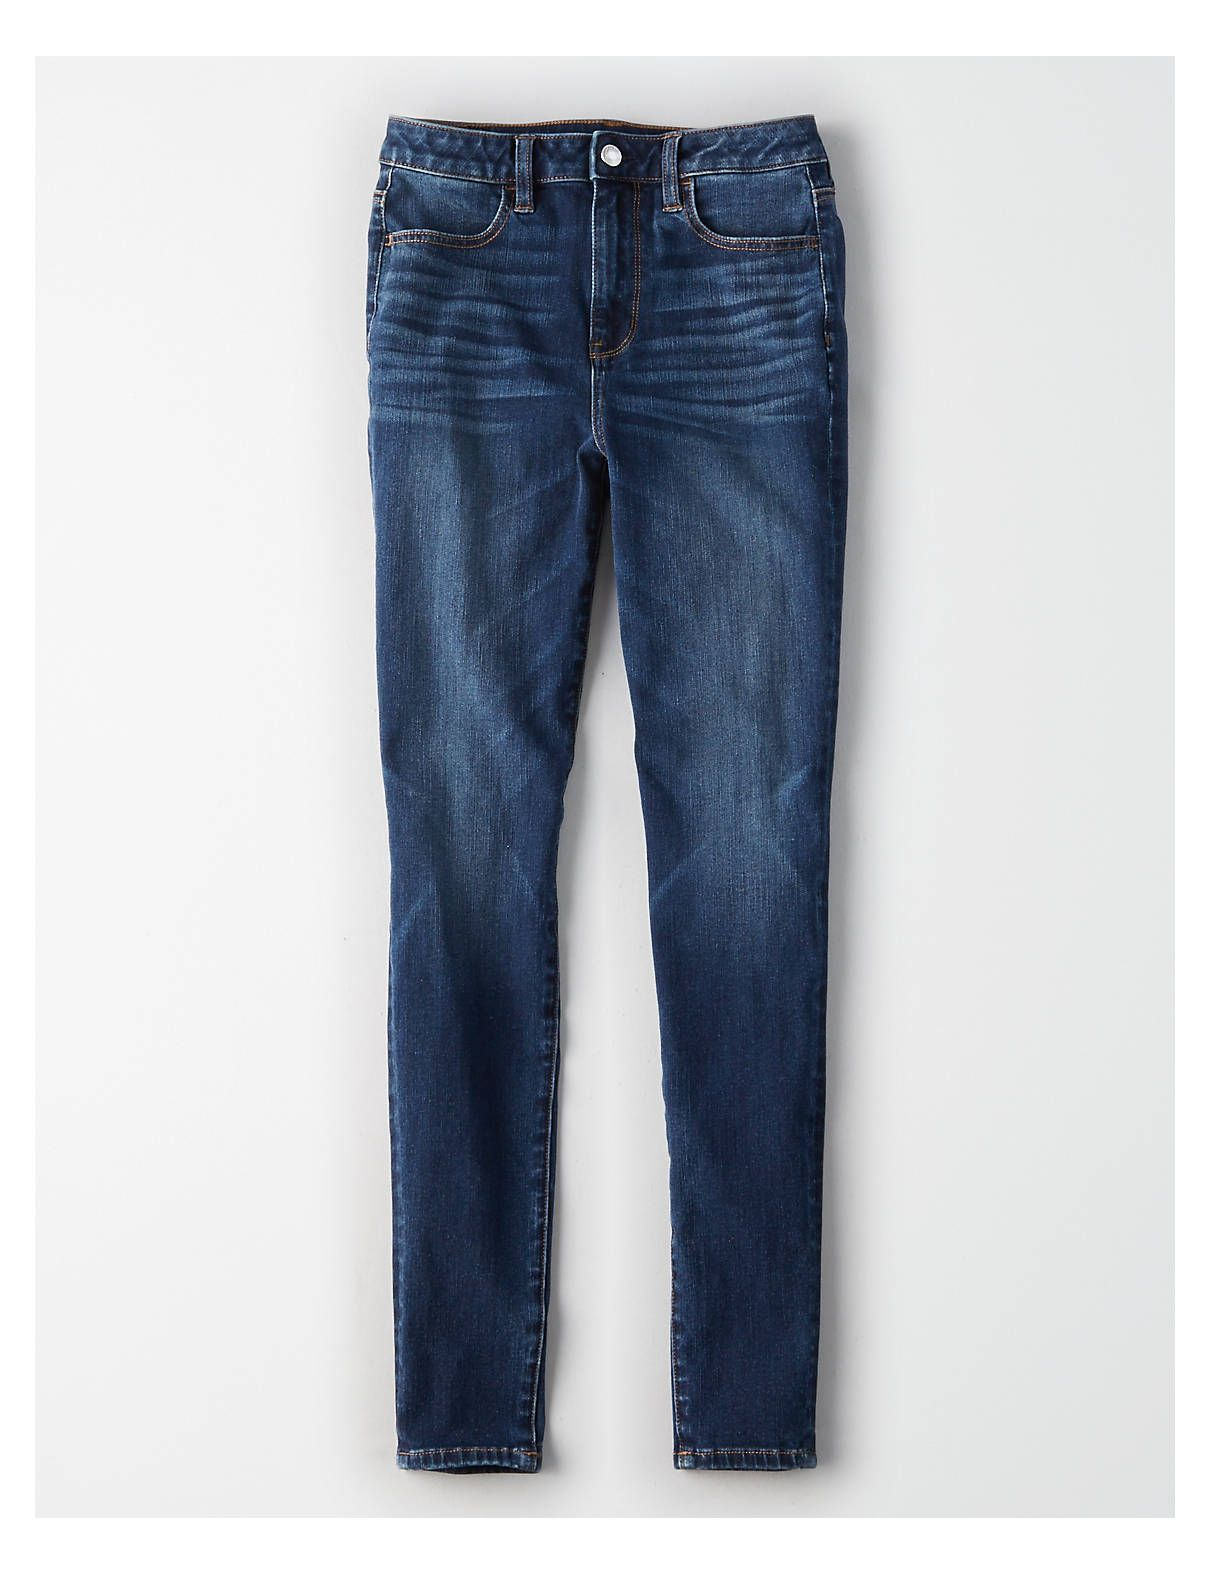 850abf8919140 AE 360 Ne(X)t Level Super High-Waisted Jegging, Somber Navy | American  Eagle Outfitters